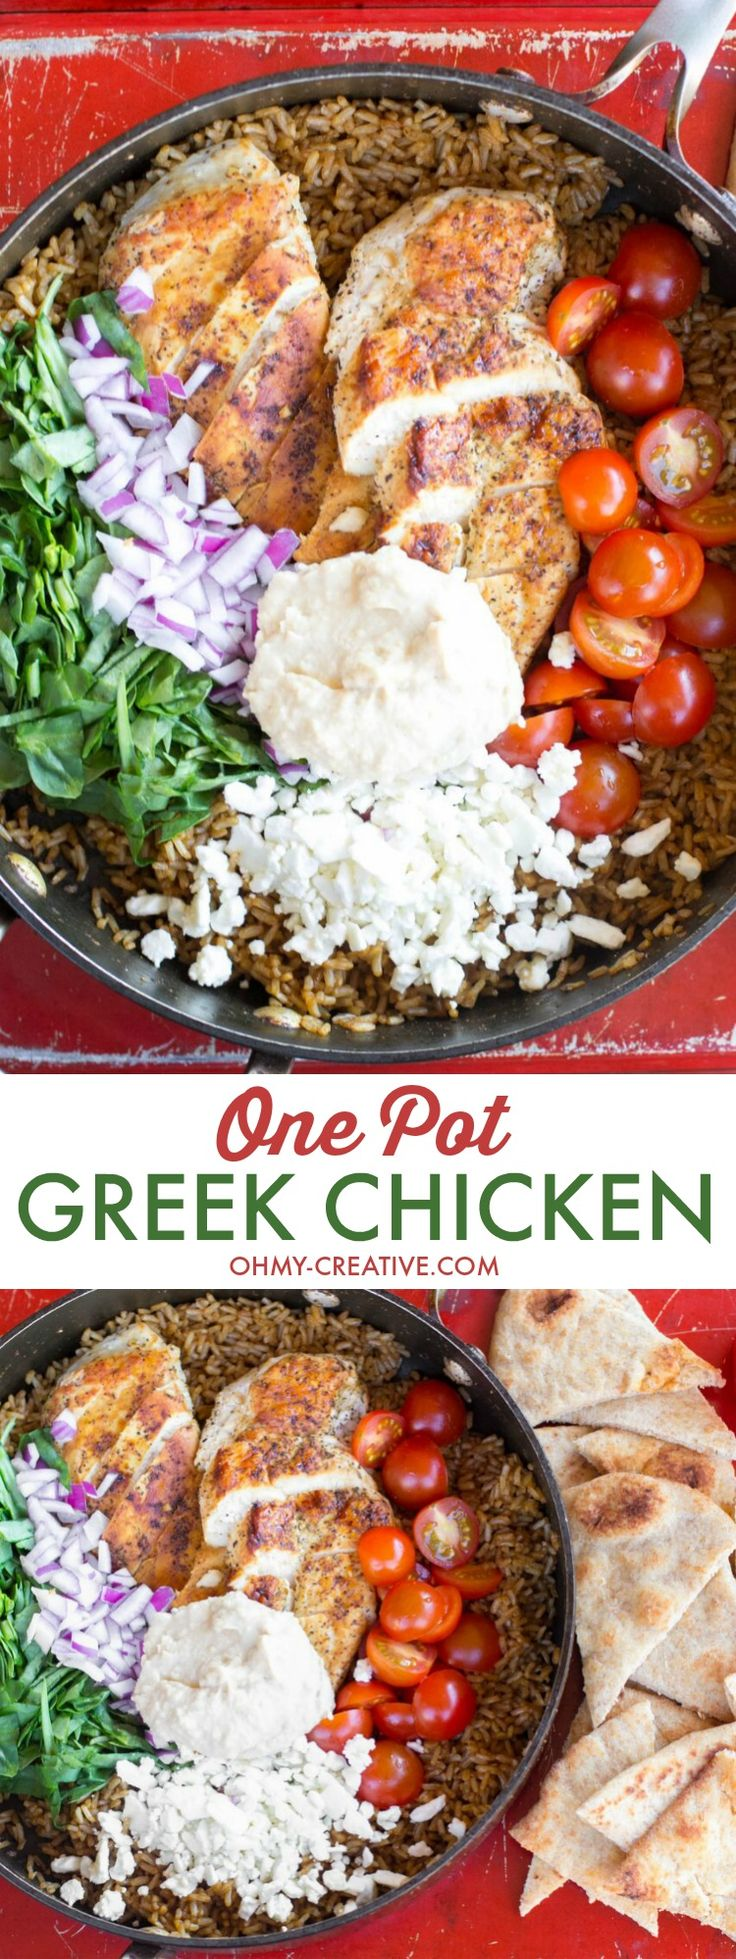 I absolutely love Mediterranean flavors like what's in this One Pot Greek Chicken and Rice recipe! Garden fresh tomatoes, hummus and perfectly seasoned chicken topped with feta cheese will have the family asking for more Greek food! Popular Pins!  | OHMY-CREATIVE.COM